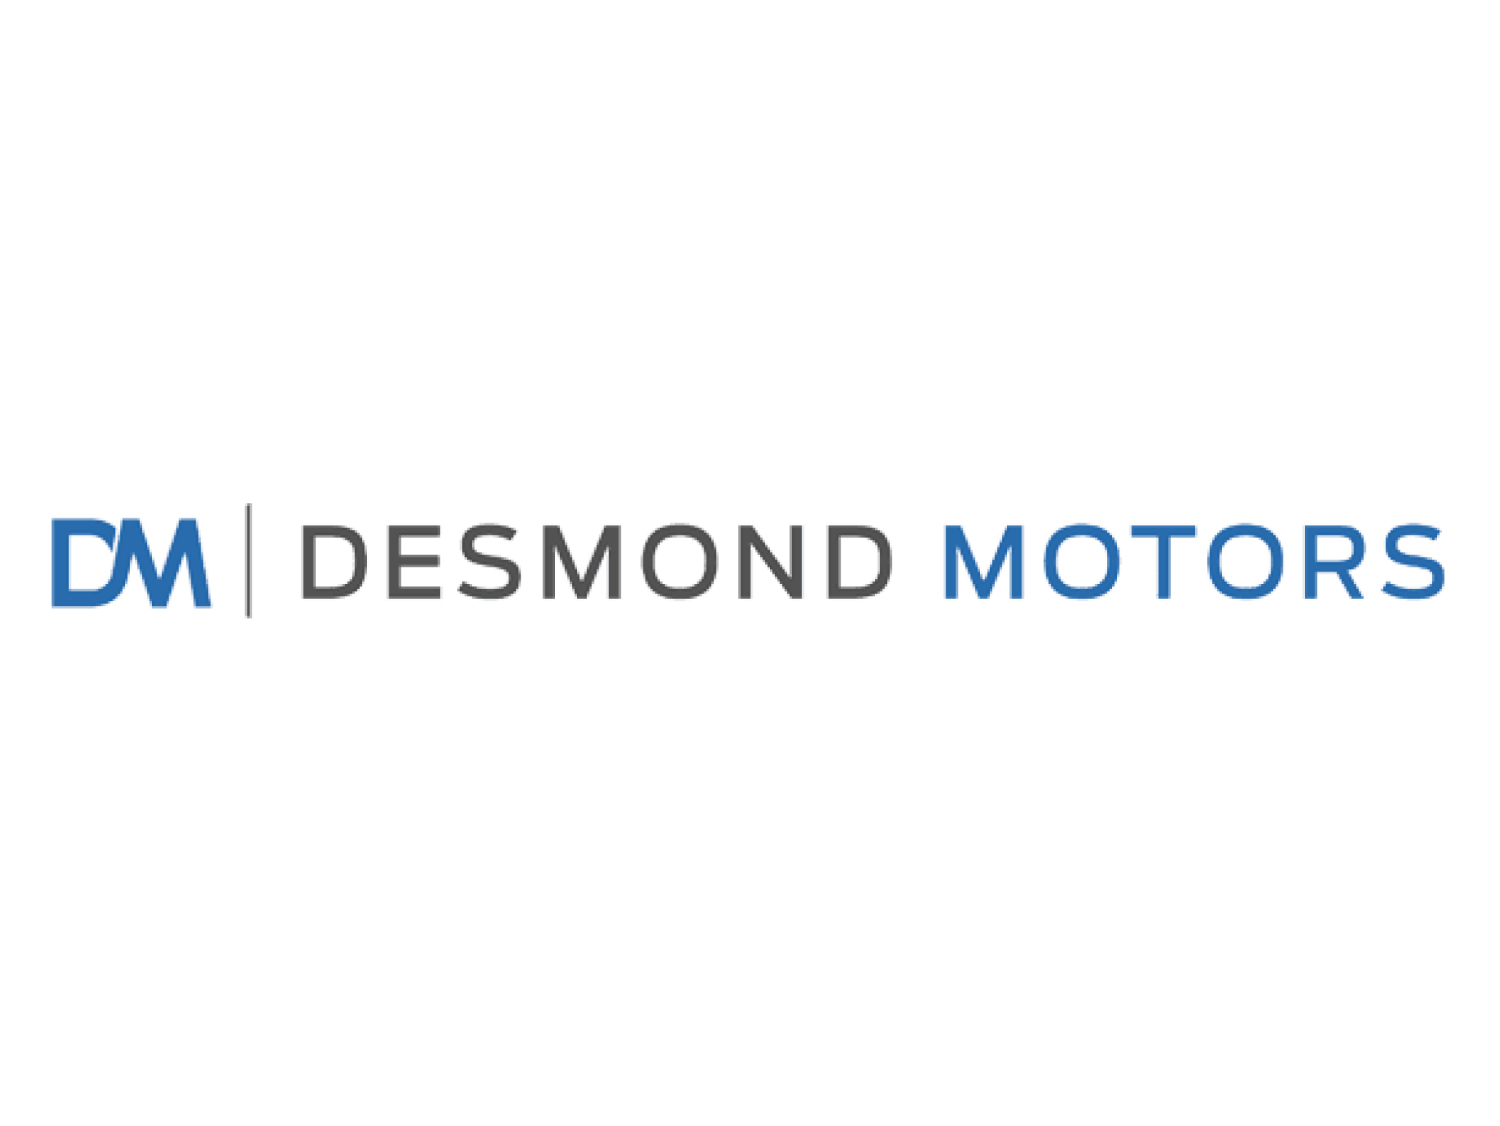 Desmond Motors Ltd.